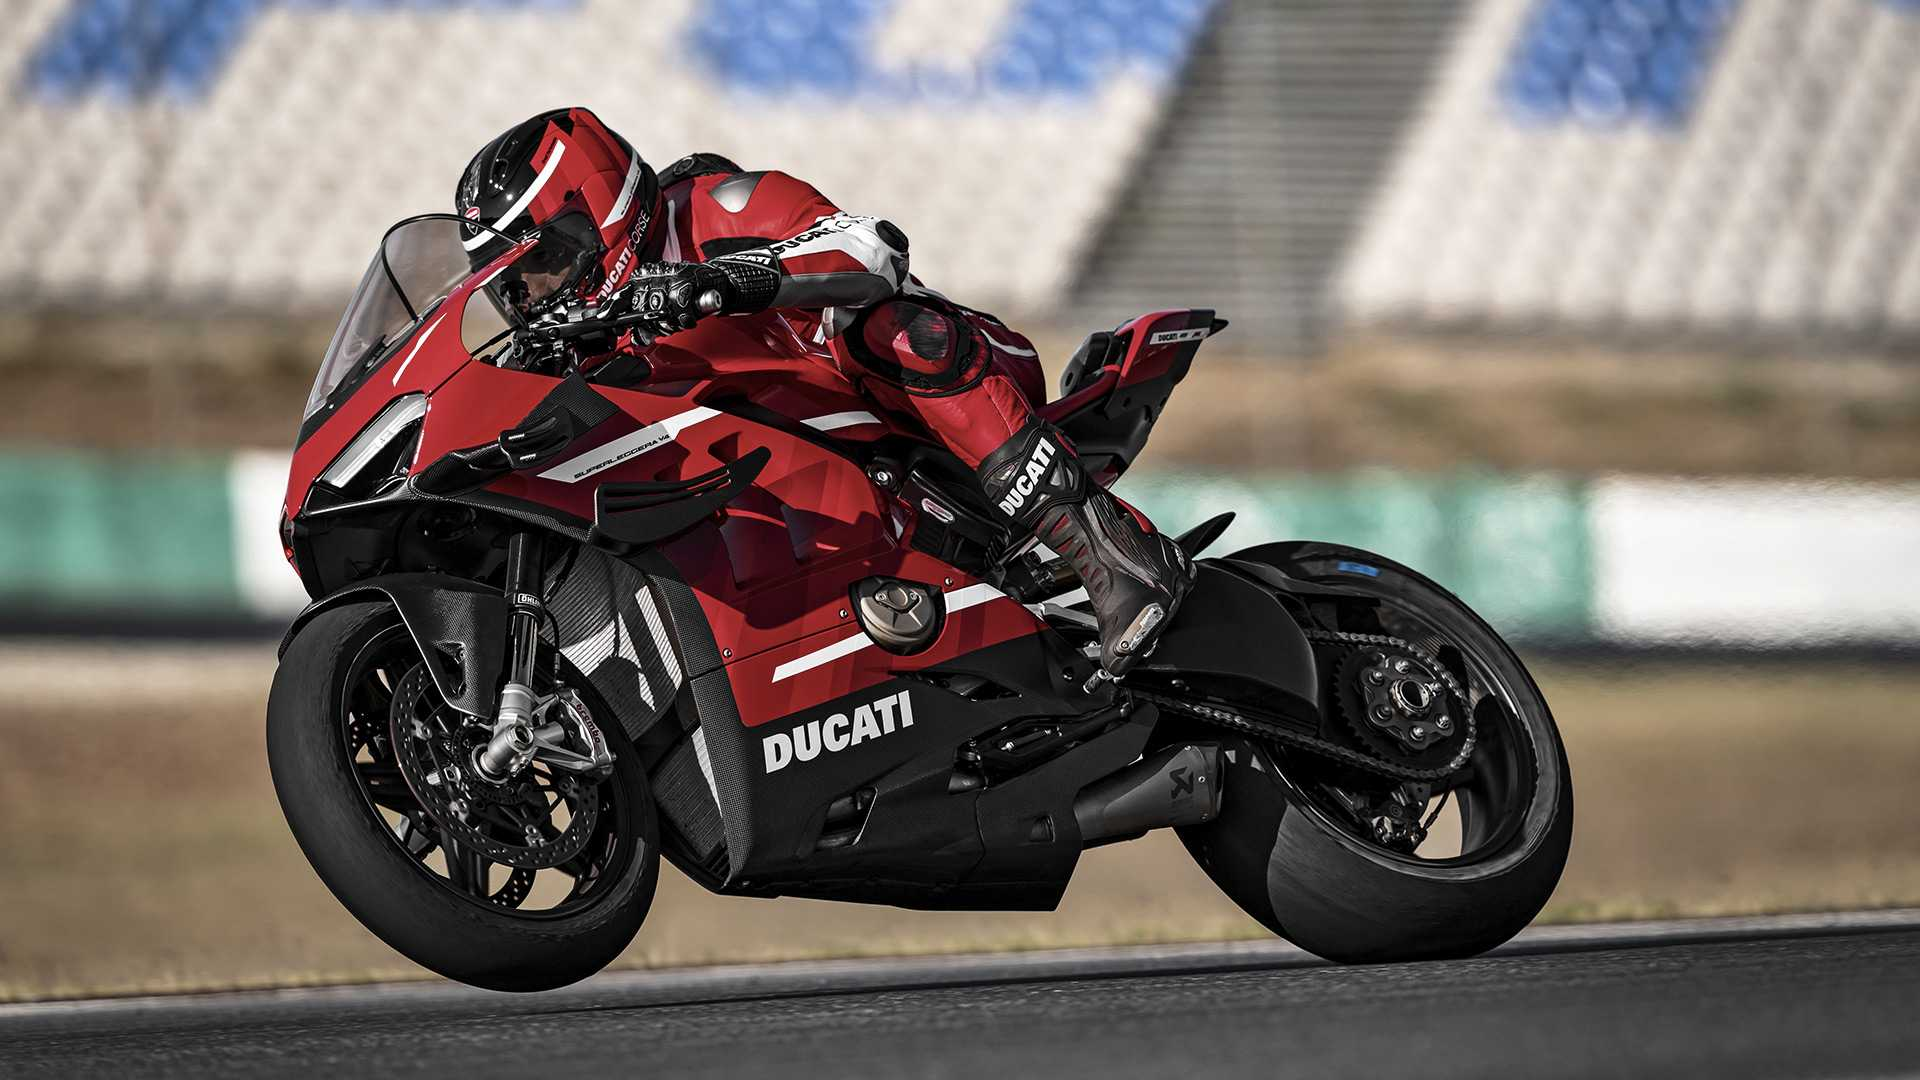 Ducati Unveils The New Superleggera V4 And It's Spectacular